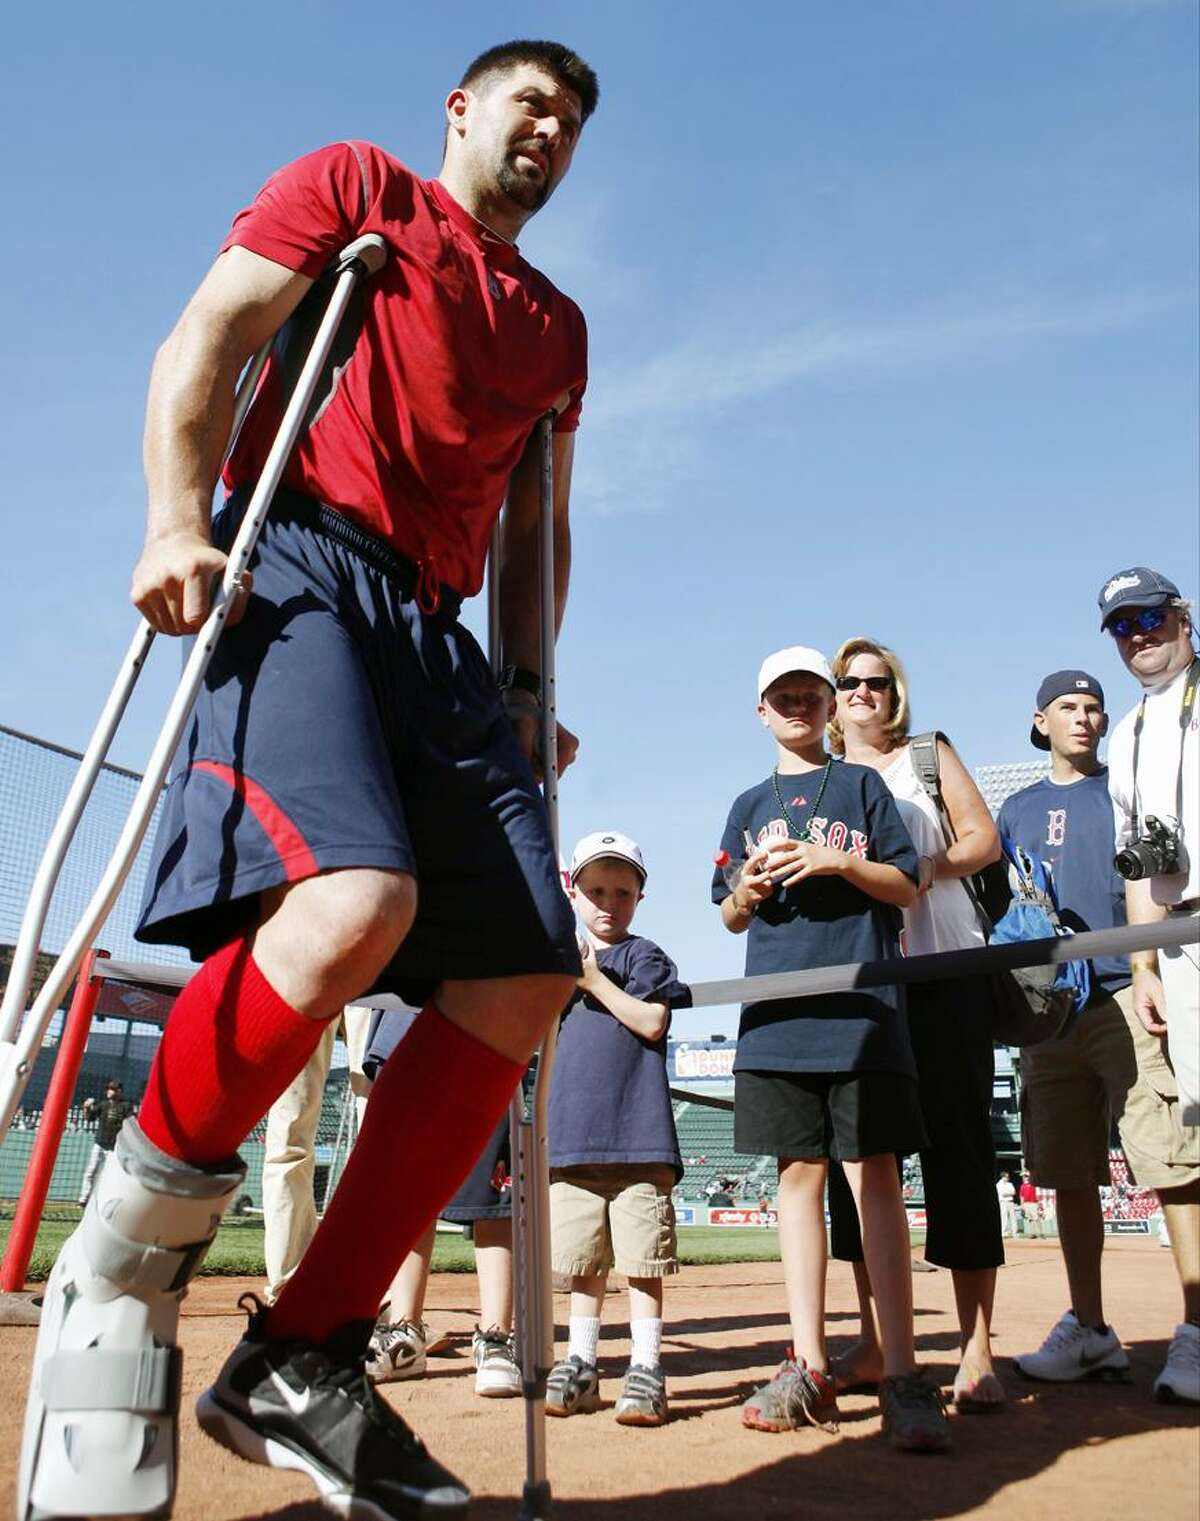 This July 3 file photo shows Boston Red Sox's Jason Varitek leaving the field on crutches after batting practice before a baseball game between the Red Sox and the Baltimore Orioles in Boston. The floor of the Red Sox clubhouse was filled with black equipment bags as players packed for their 10-day West Coast trip. Amid the clutter, the stuff that revealed the team's current condition was still hard to miss. The protective boot on Dustin Pedroia's broken left foot. The splint on Victor Martinez's fractured left thumb. The crutches leaning against Varitek's locker, and the boot on his broken right foot. (AP Photo/Michael Dwyer,File)